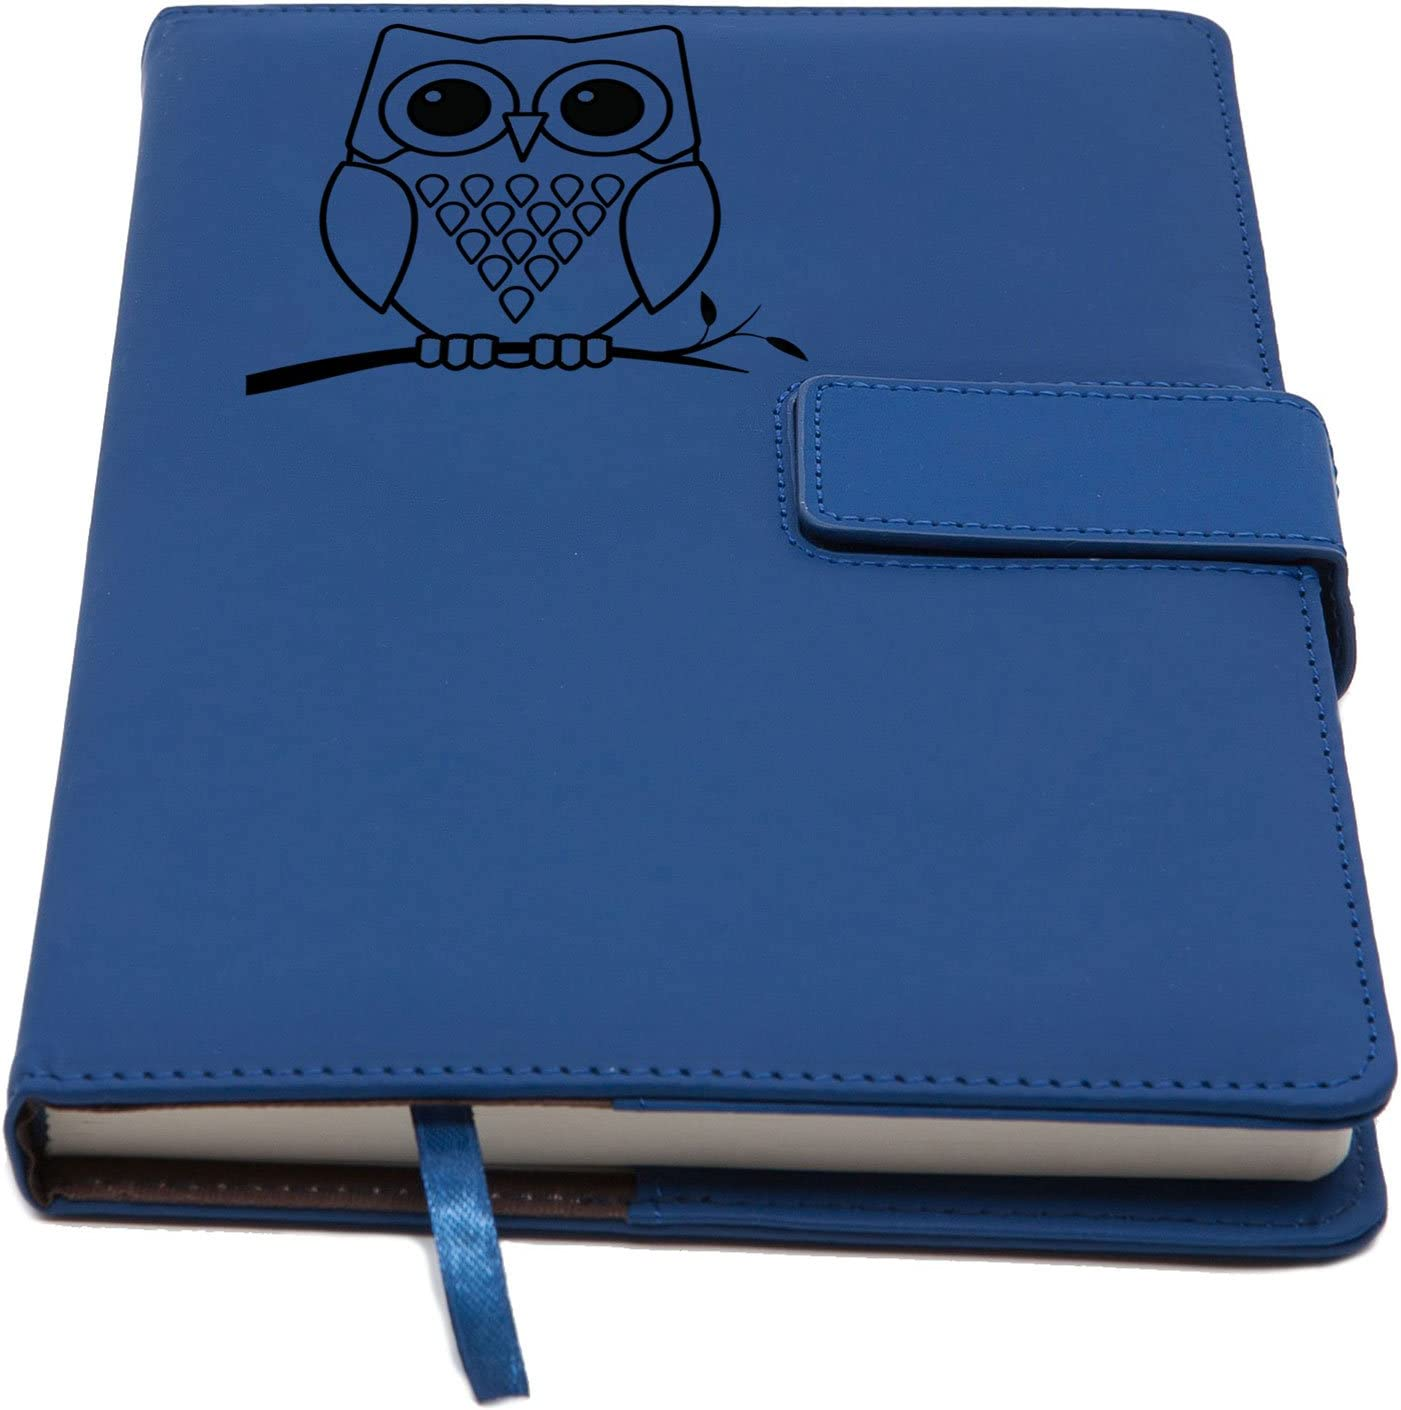 The Owl Refillable Writing Journal | Magnetic Faux Leather Journal, 5 x 8 Inch, 200 Lined Pages Travel Personal Diary, Quality Notebooks and Journals for Men and Women from The Amazing Office